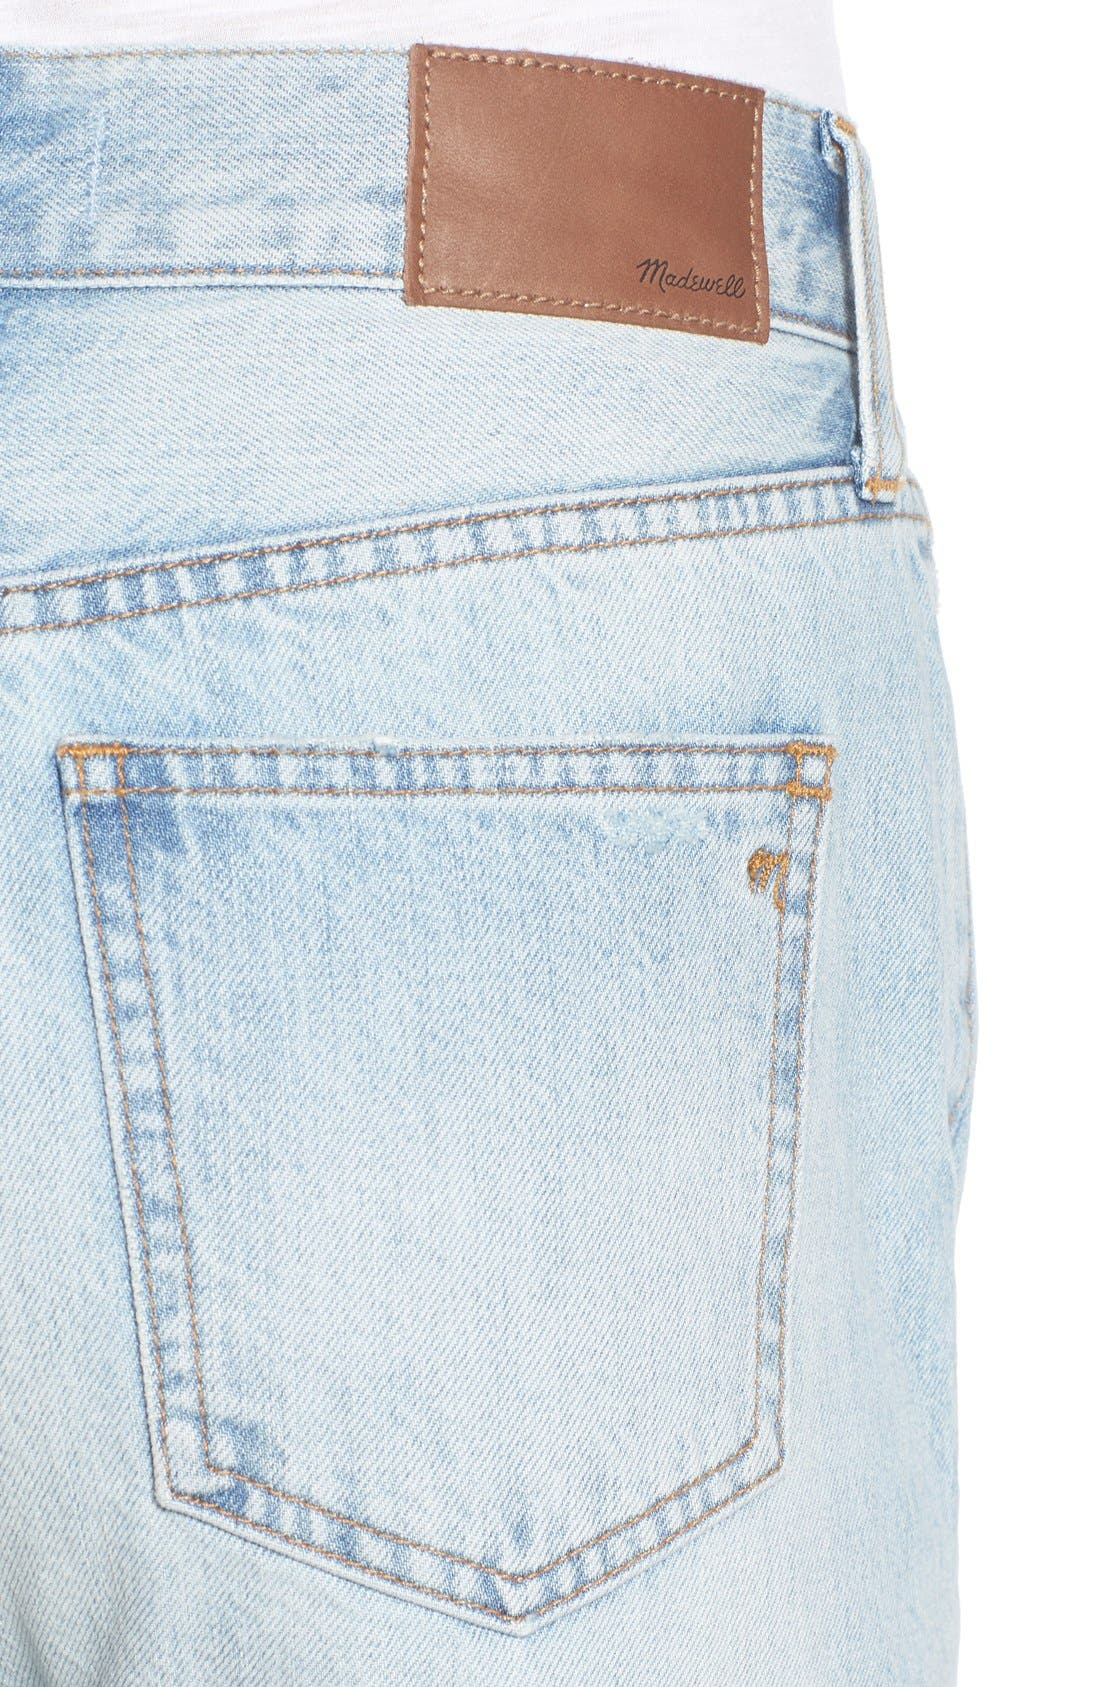 'Perfect Summer' High Rise Ankle Jeans,                             Alternate thumbnail 5, color,                             Fitzgerald Wash